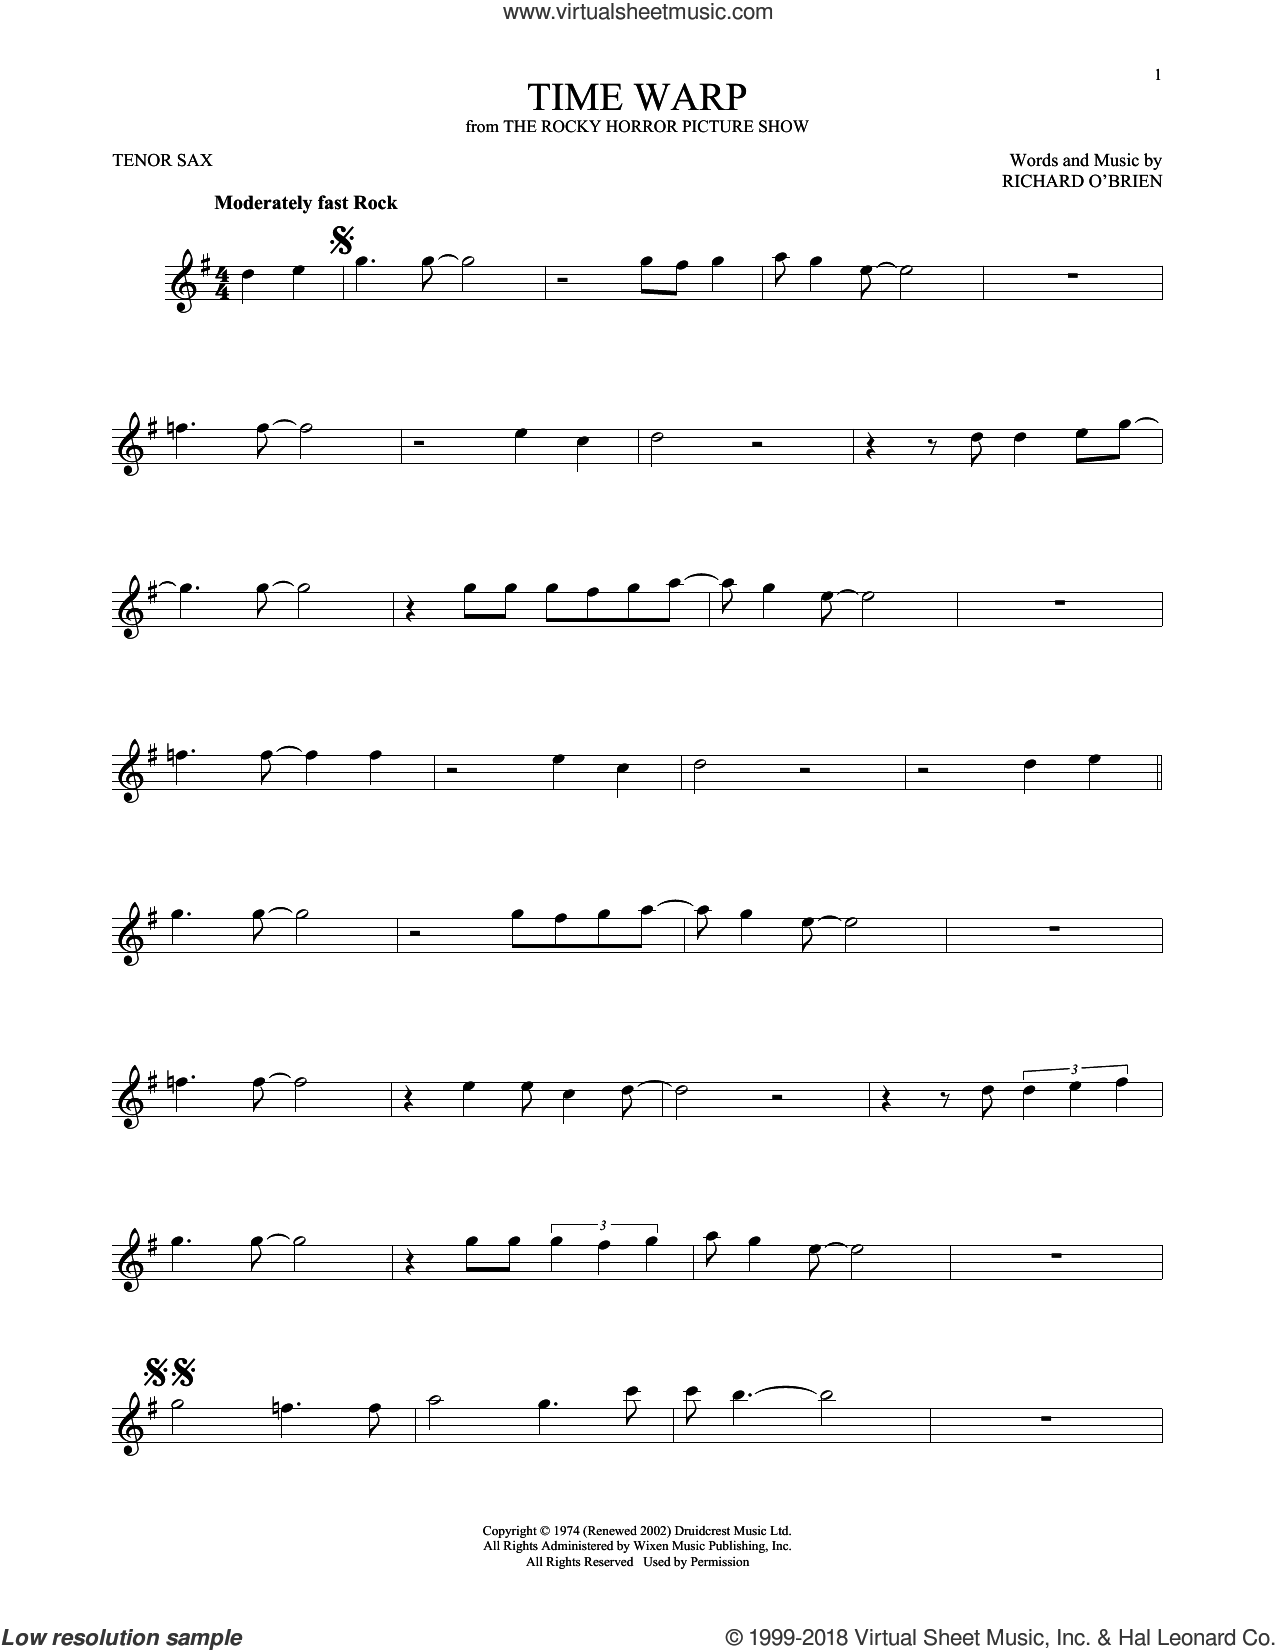 Time Warp sheet music for tenor saxophone solo by Richard O'Brien, intermediate skill level